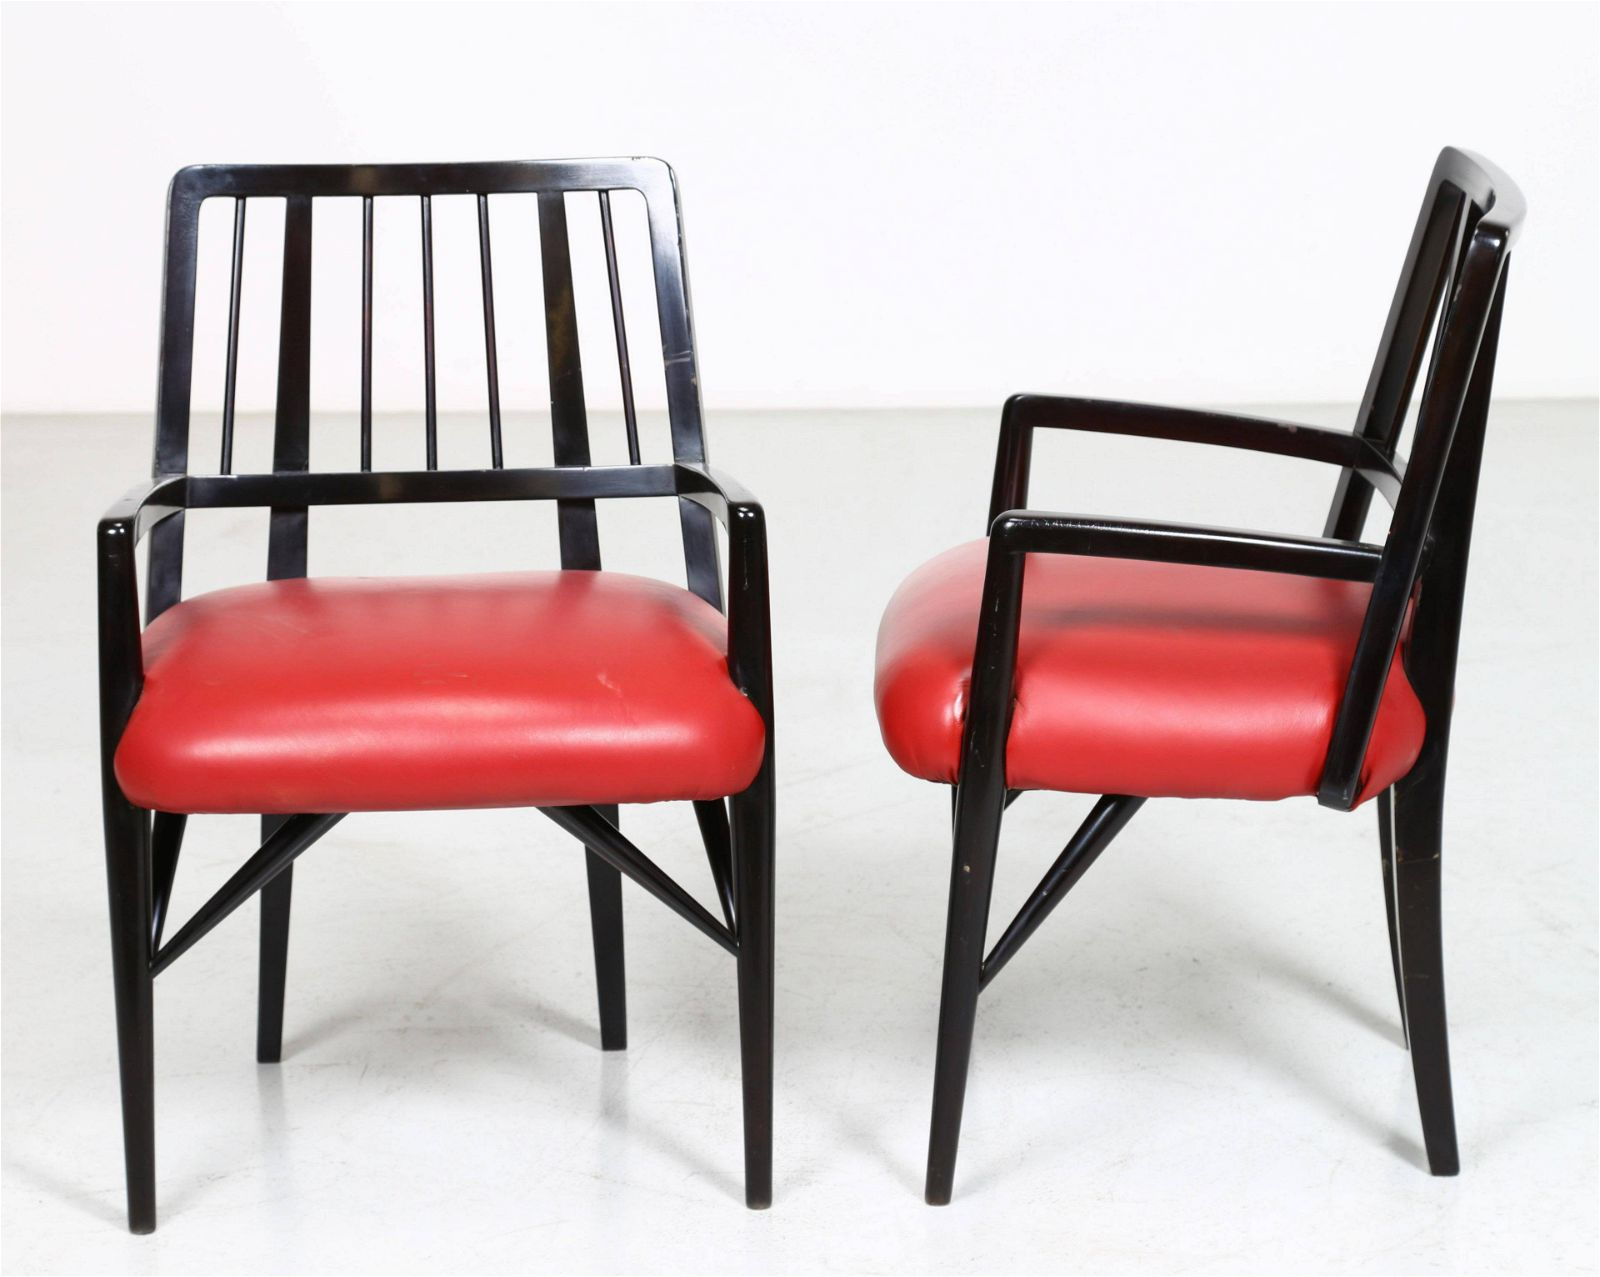 Italian Chairs by Paul László Lacquered Wood 1950s